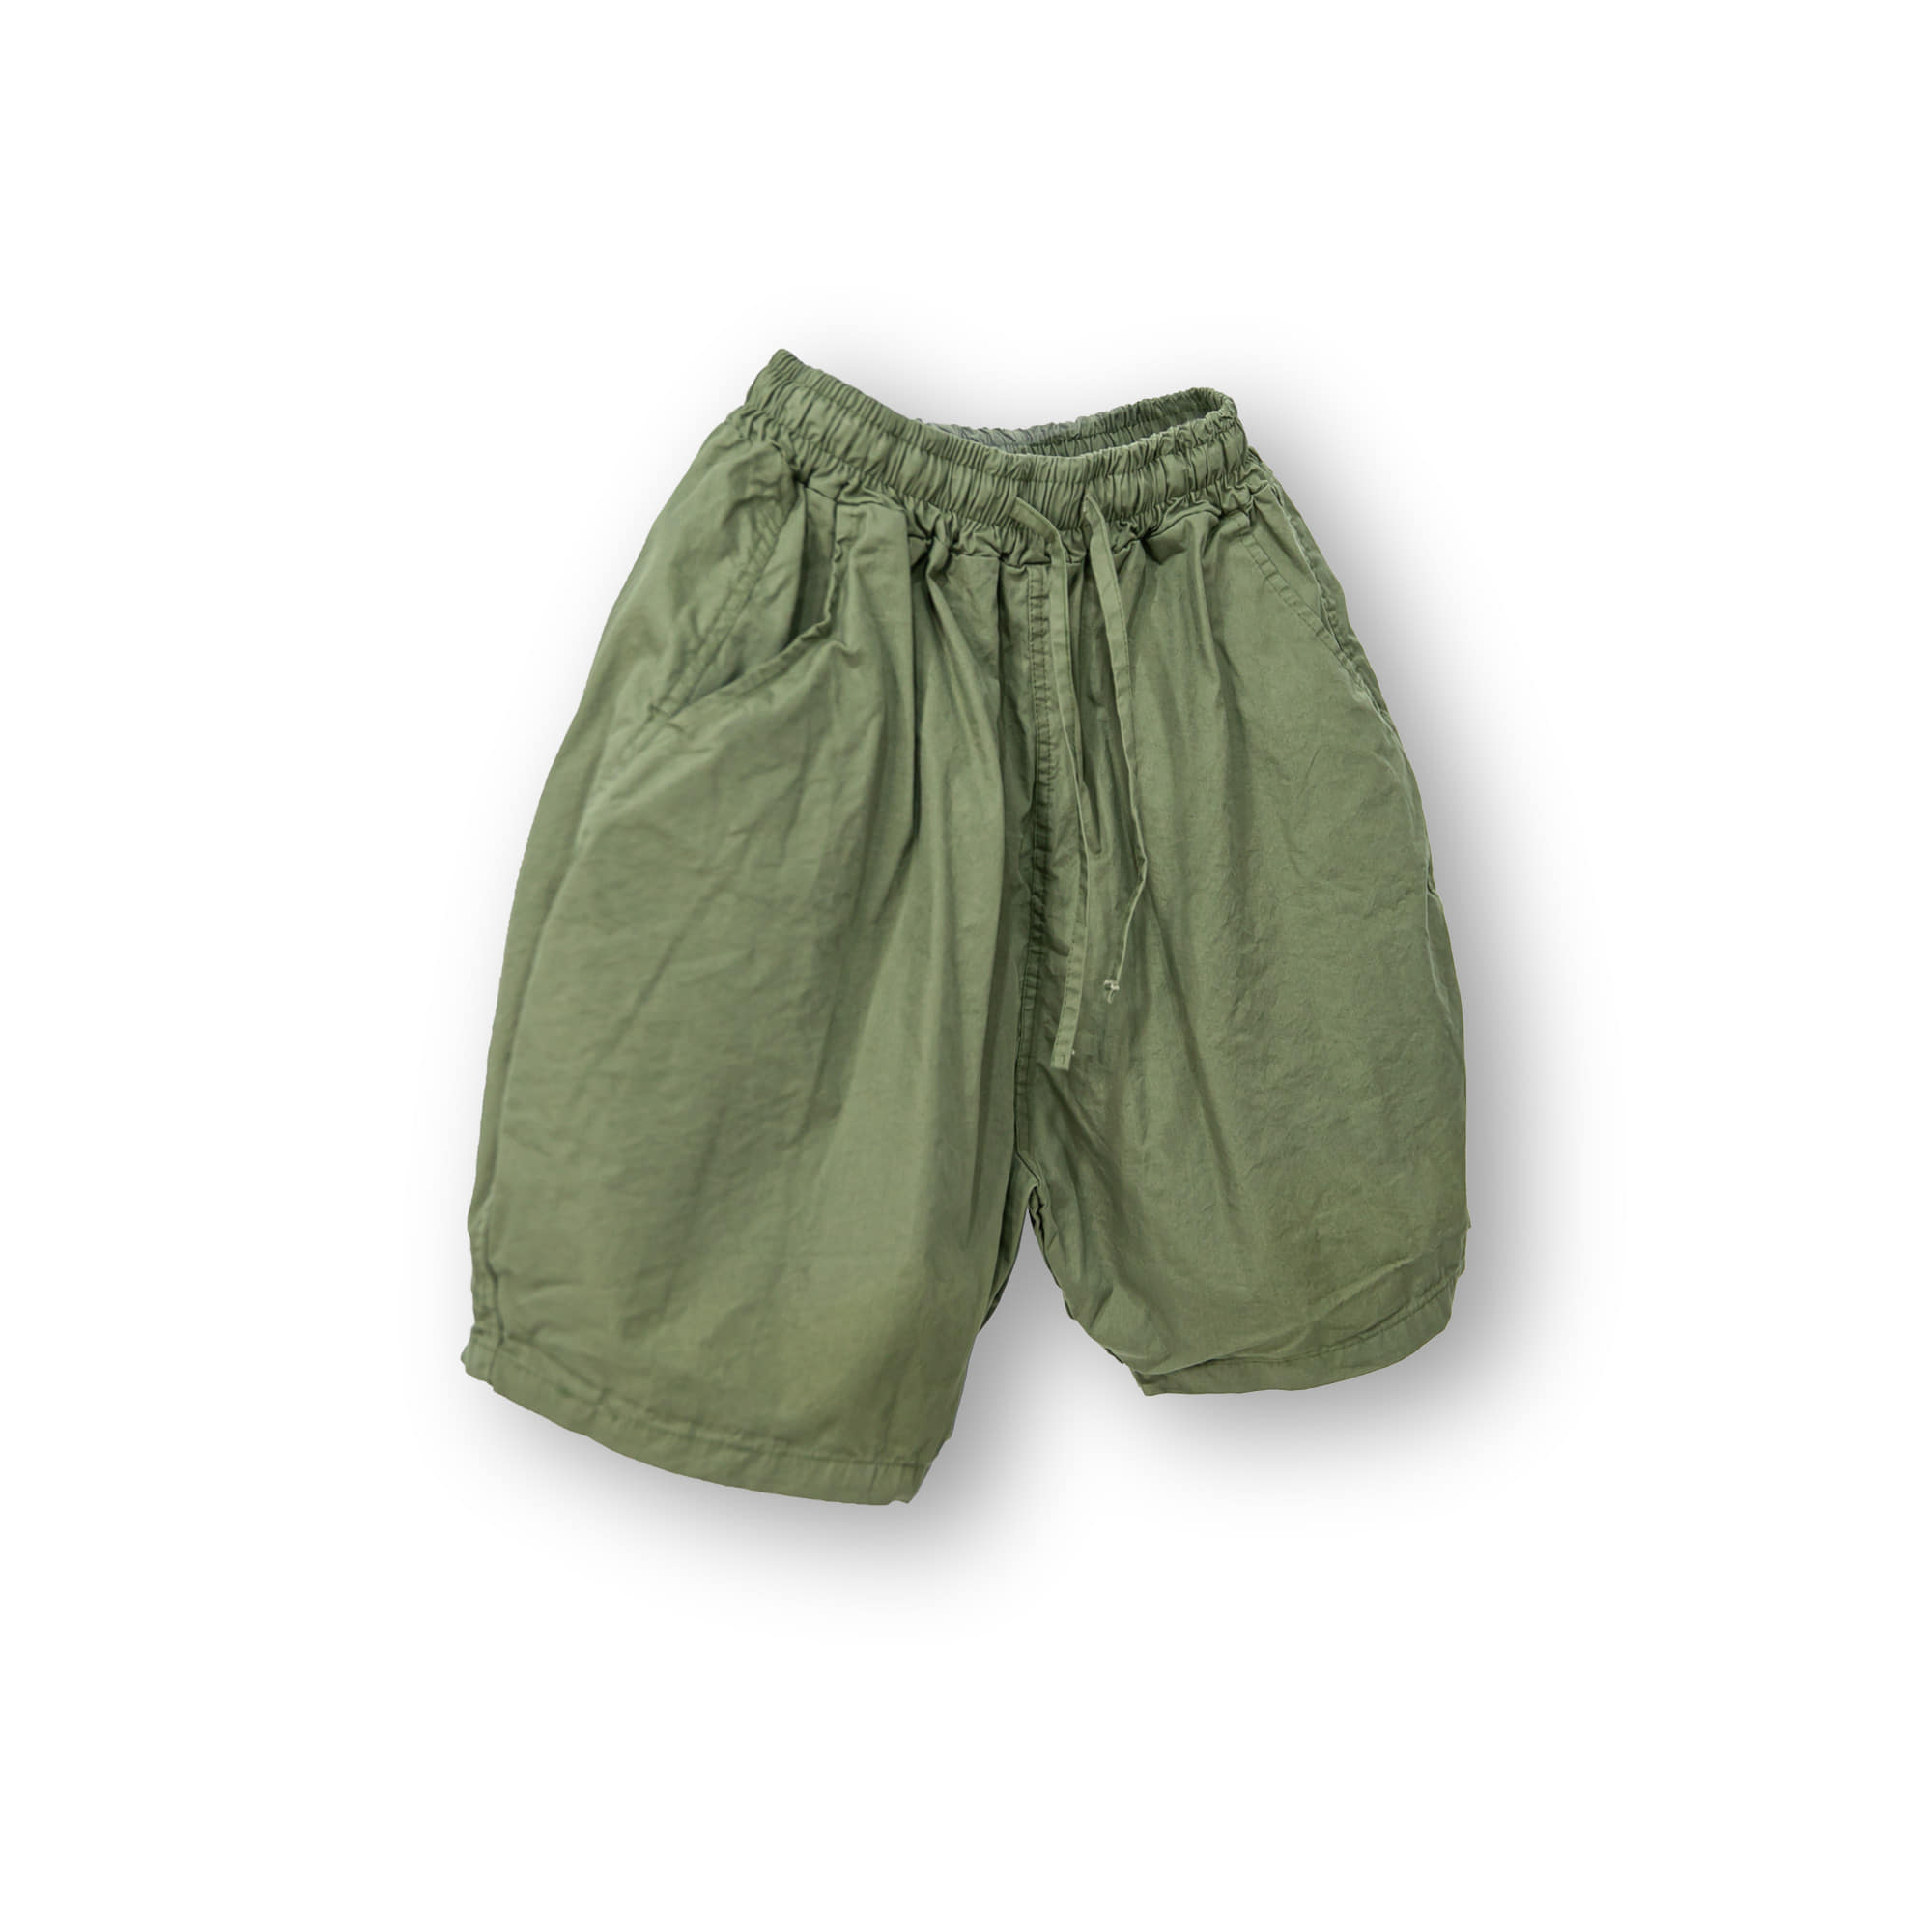 Cn Volume Shorts - Khaki